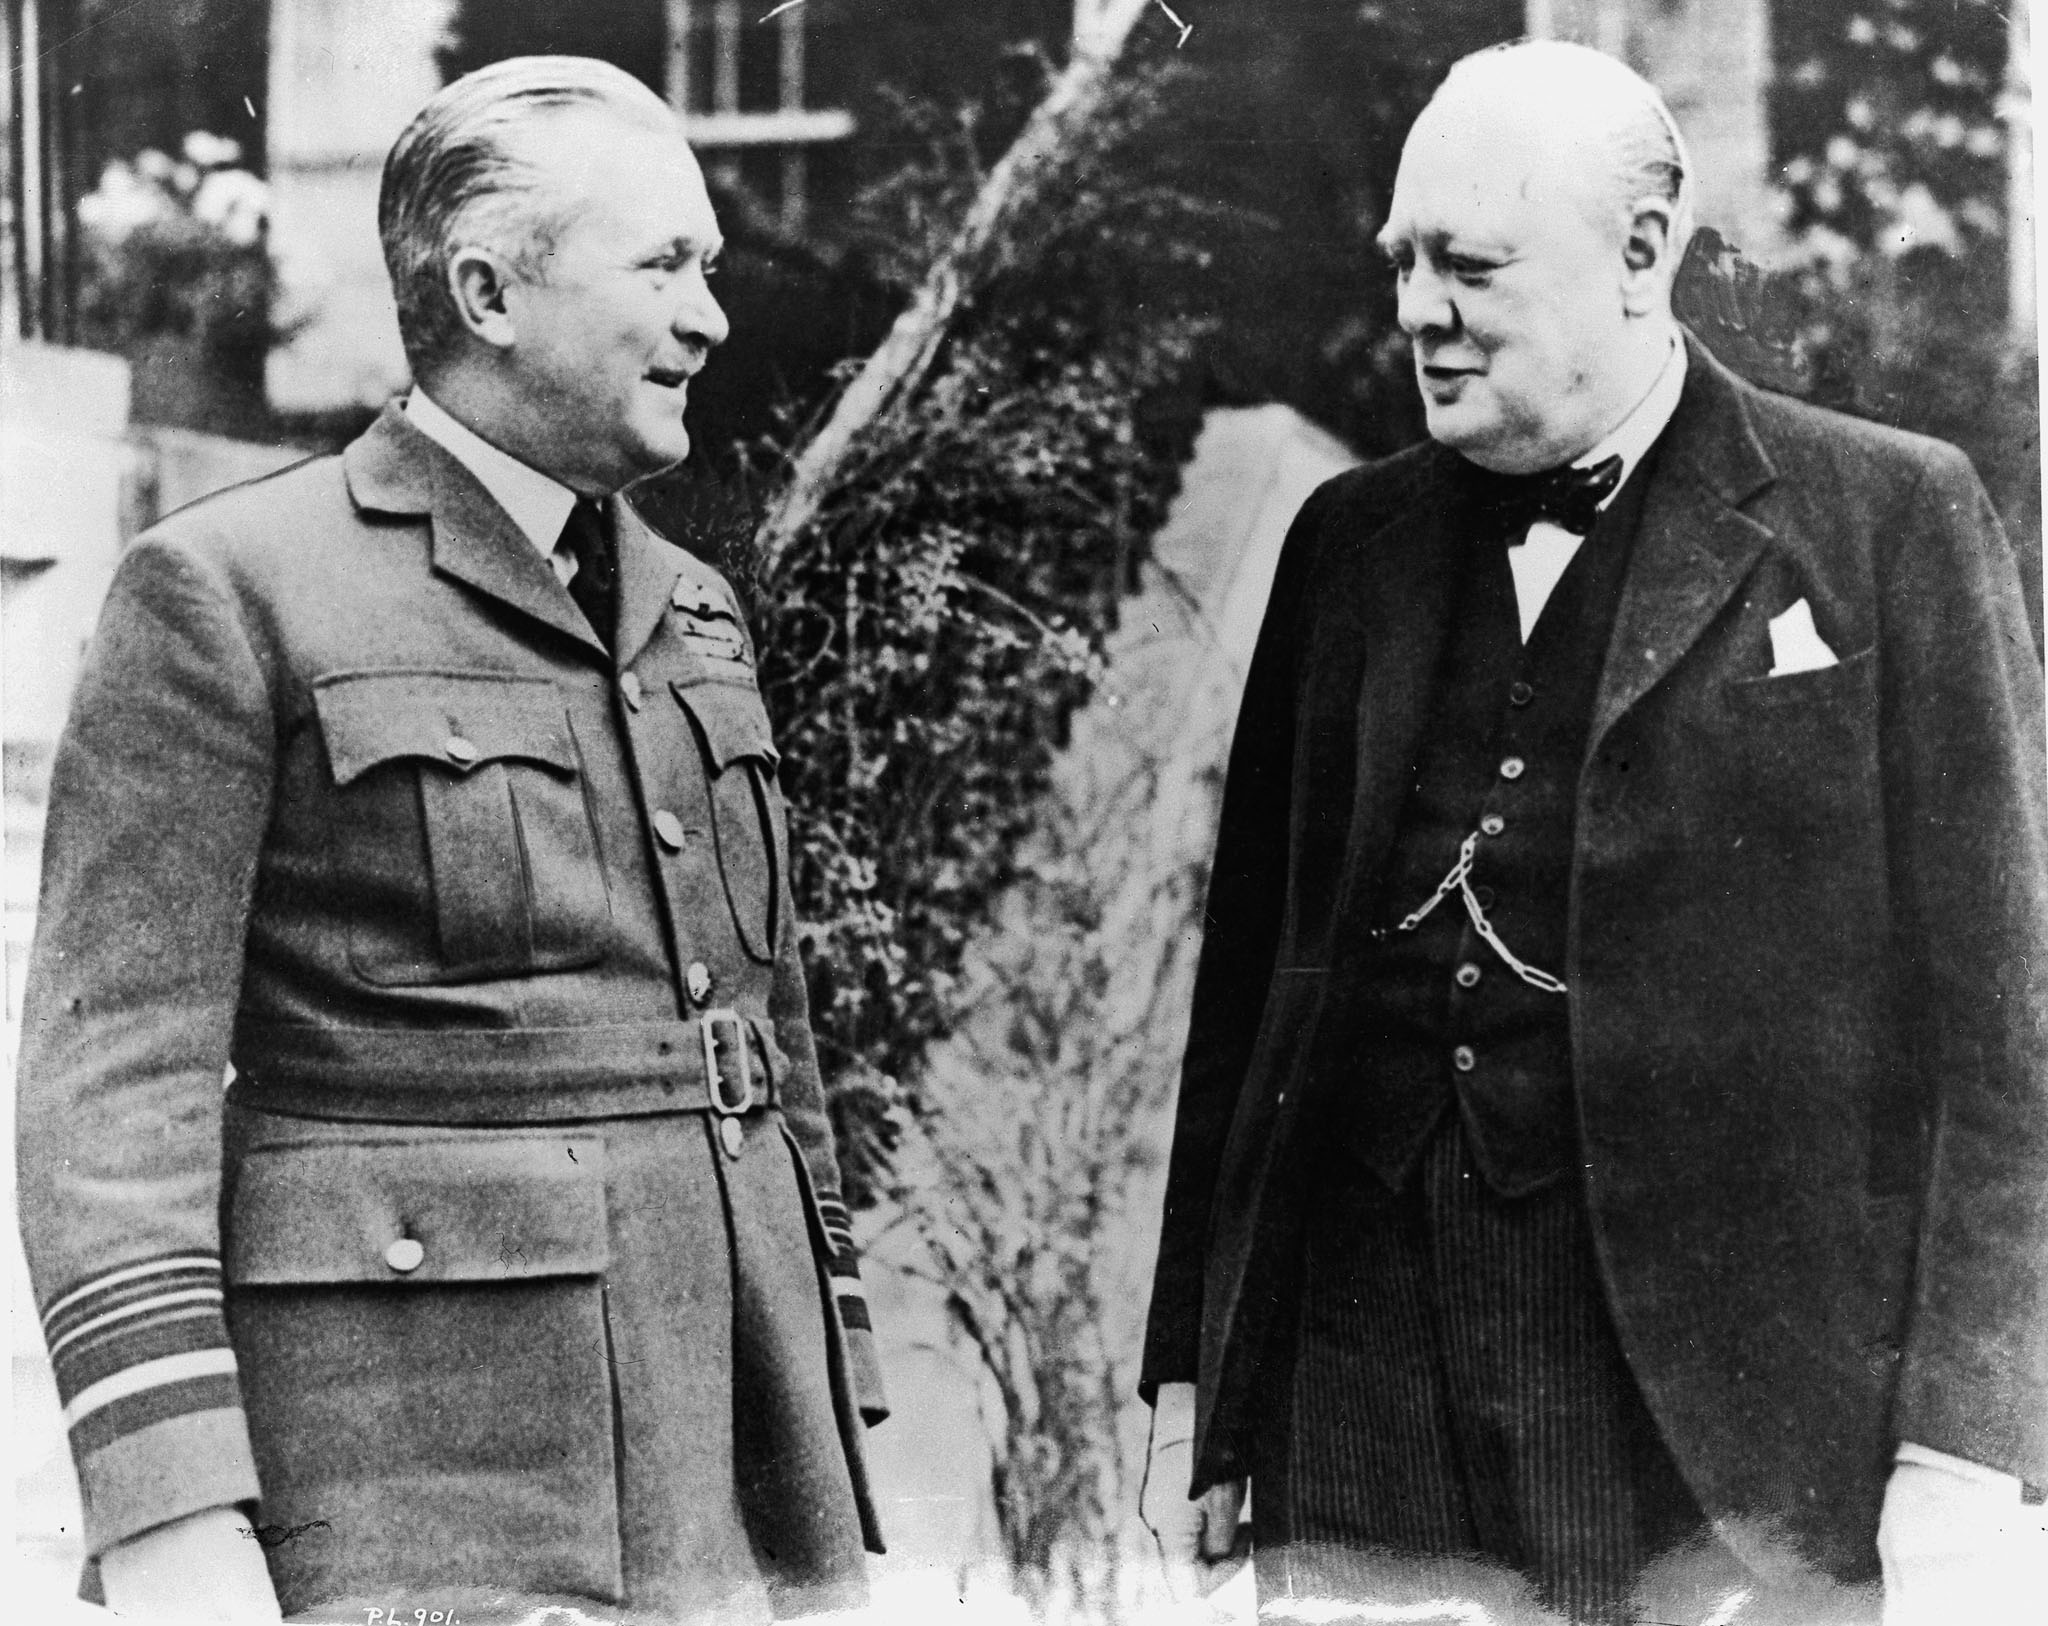 Air Vice Marshal William Avery Bishop chats with British Prime Minister Winston Churchill in England in 1940. PHOTO: DND Archives, PL-091